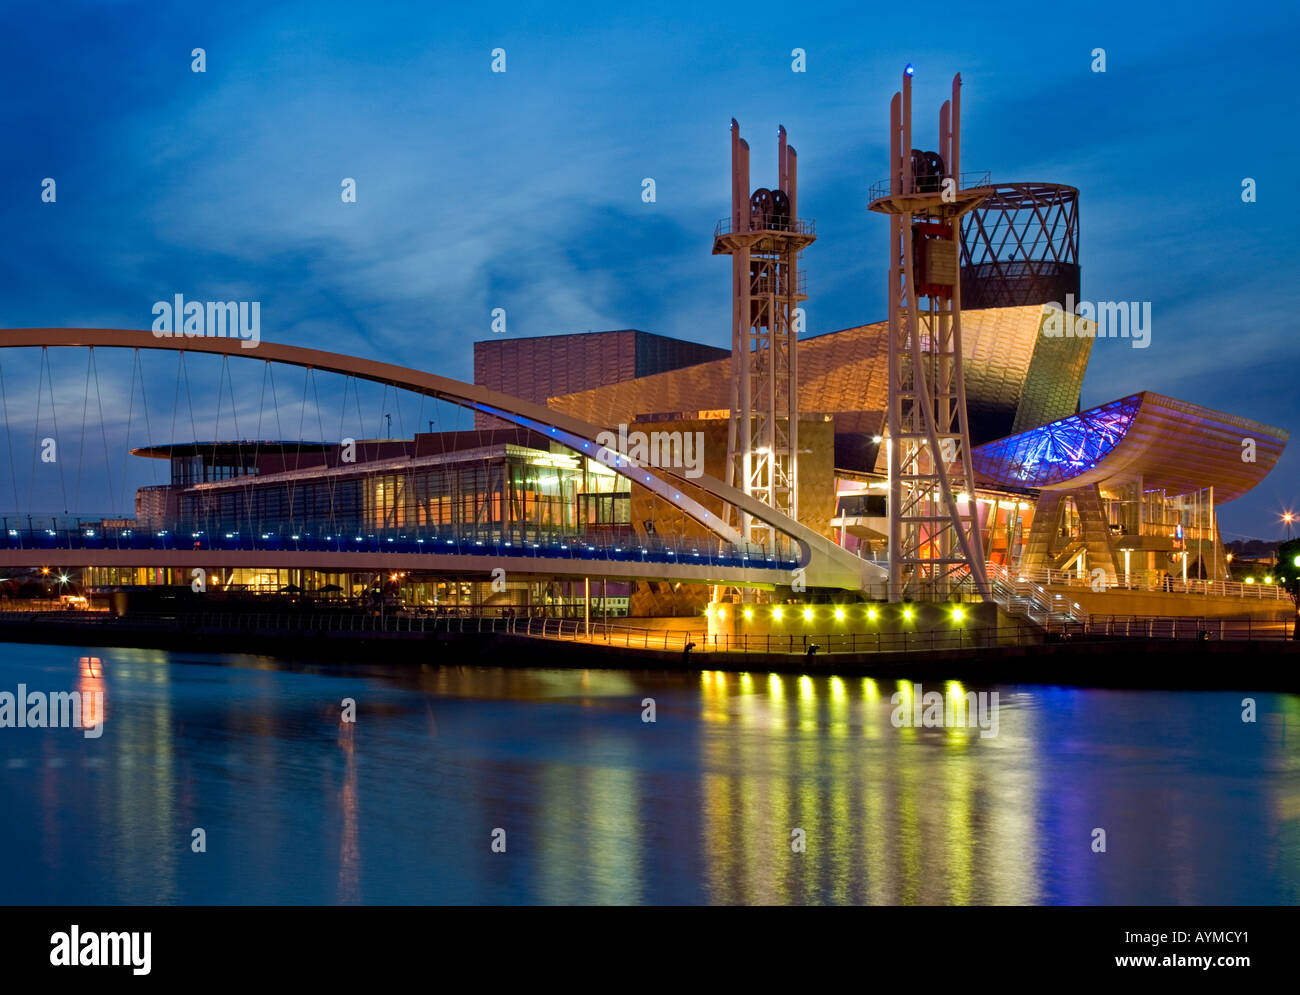 The Lowry Centre and Lowry Outlet Mall at Night, Salford Quays, Greater Manchester, England, UK - Stock Image